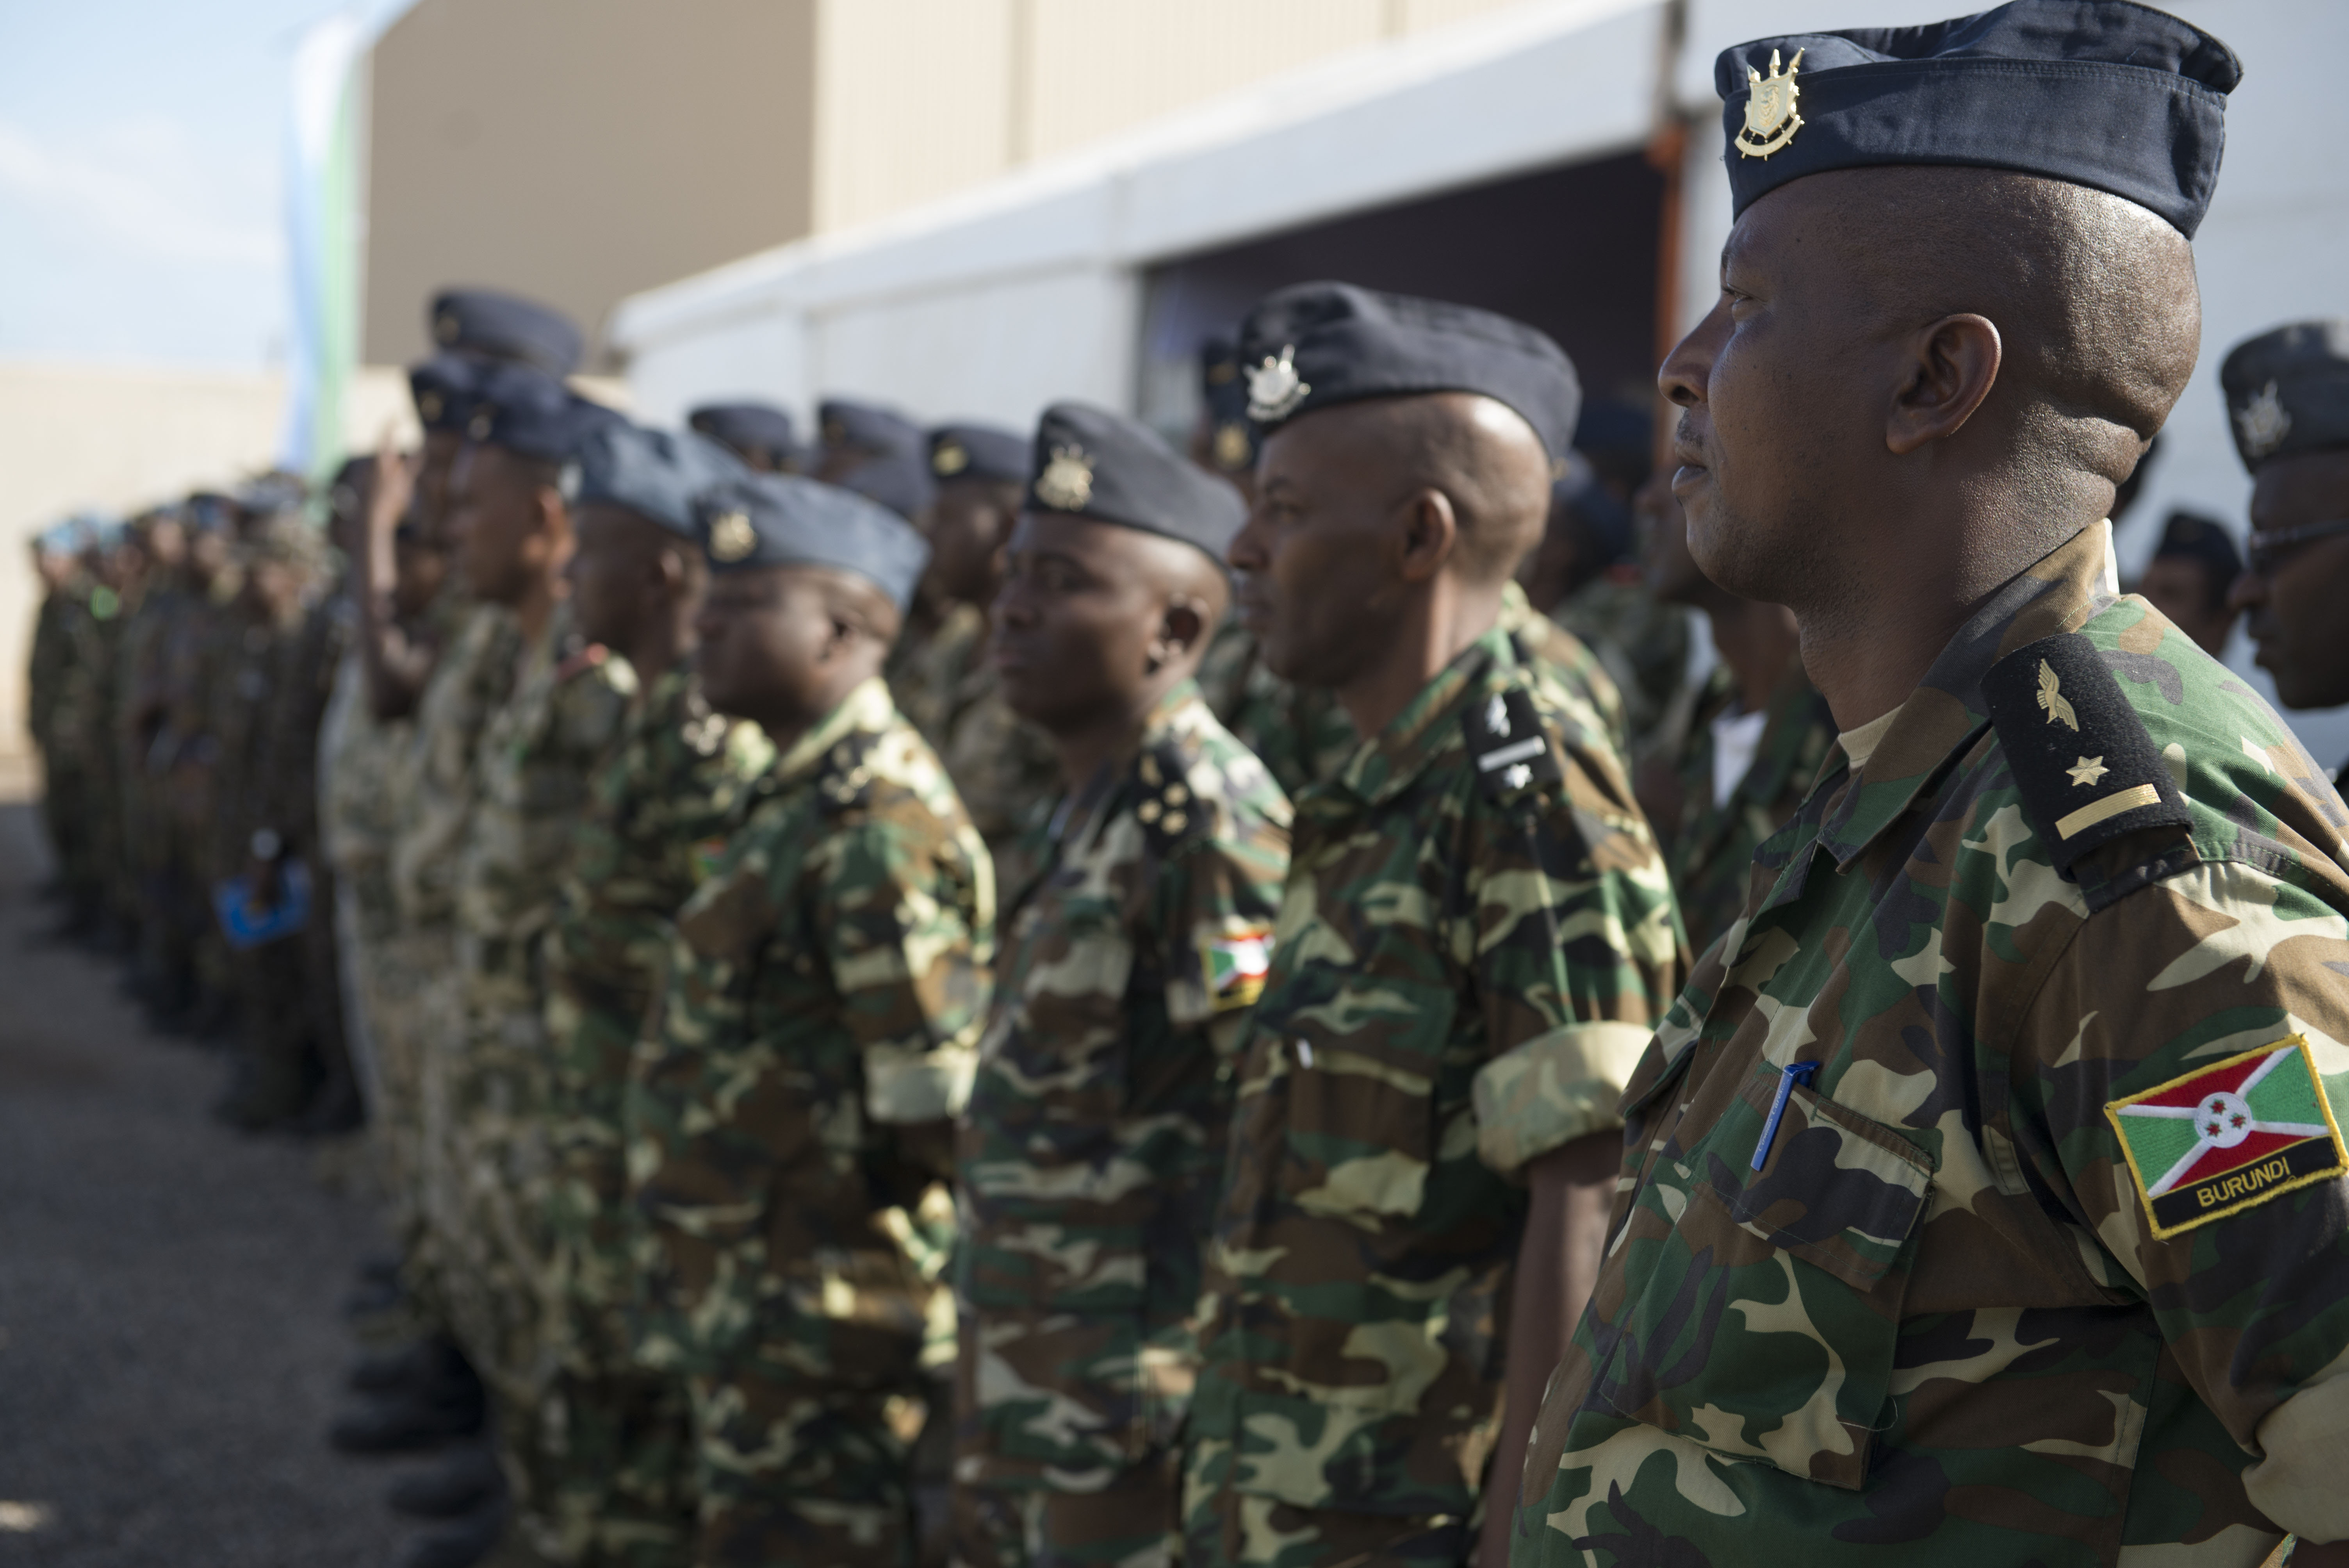 DJIBOUTI AIR BASE, Djibouti -- Burundi Airmen stand in formation during the opening ceremony for African Partnership Flight on Djibouti Air Base, Djibouti, Feb. 7, 2015. African Partnership Flight is the premier program for delivering aviation security cooperation. (U.S. Air Force photo/Tech. Sgt. Benjamin Wilson